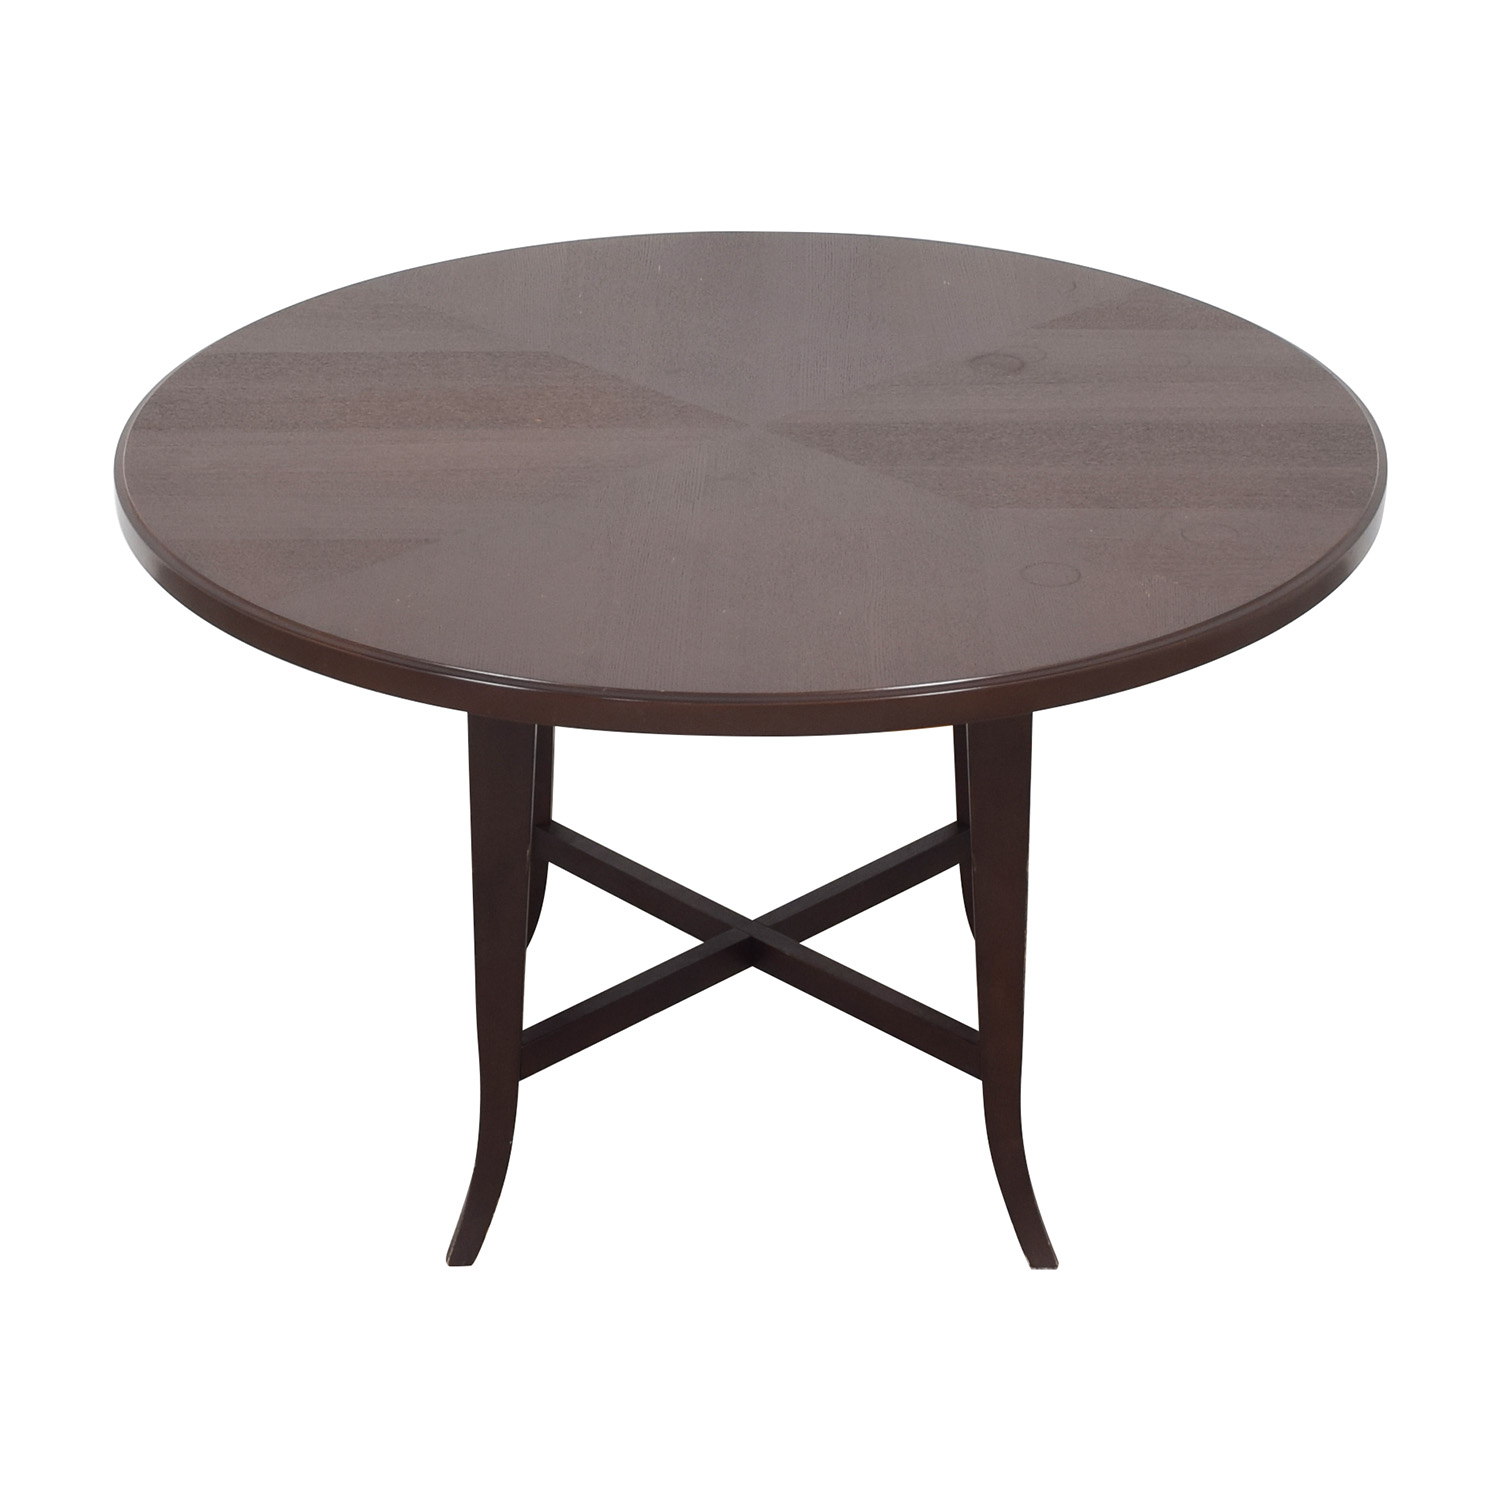 Crate & Barrel Round Dining Table / Dinner Tables